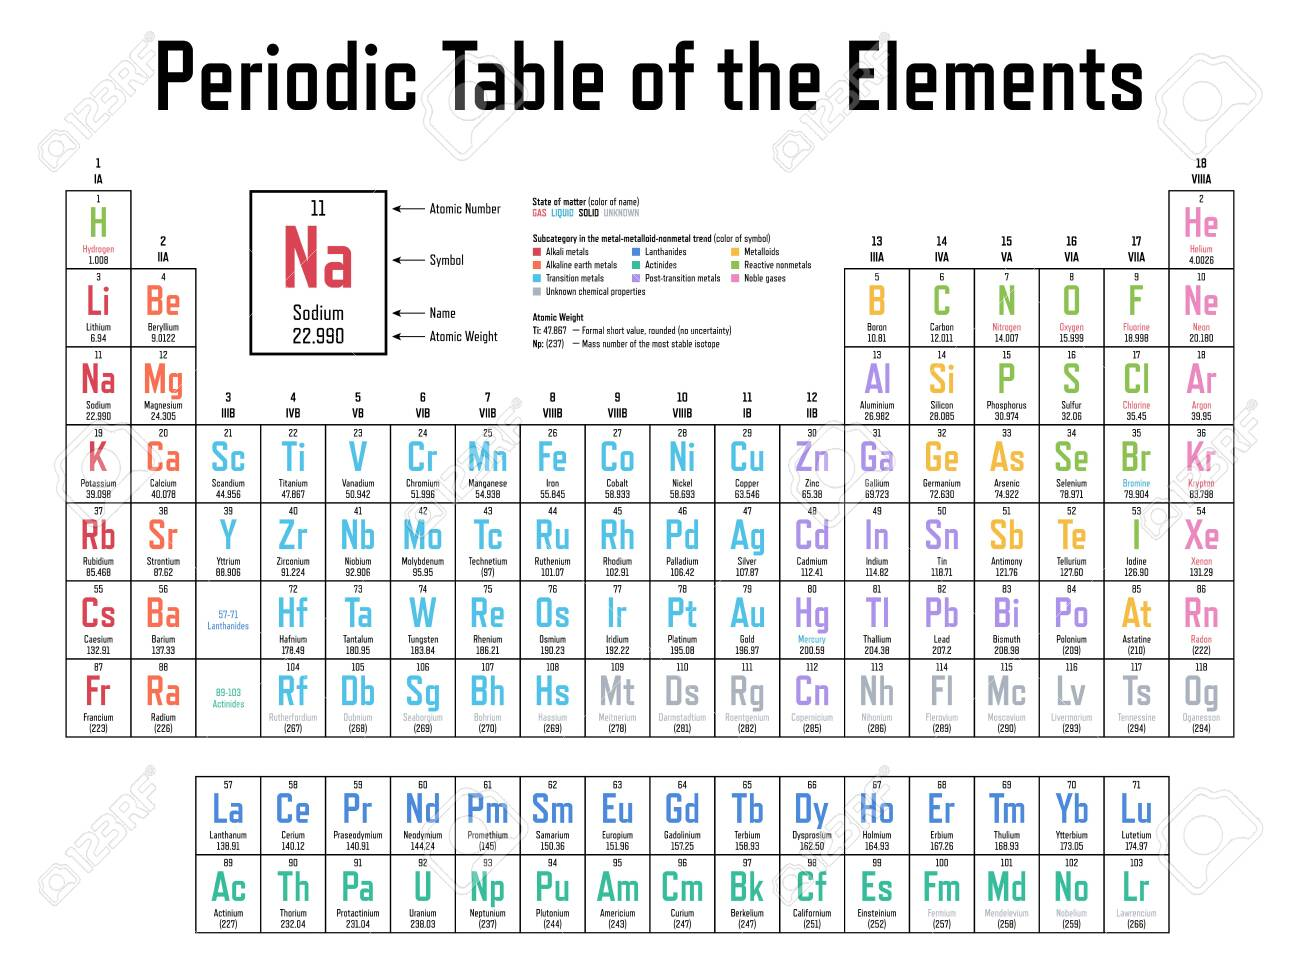 Colorful Periodic Table of the Elements - shows atomic number, symbol, name, atomic weight, state of matter and element category - 151336578